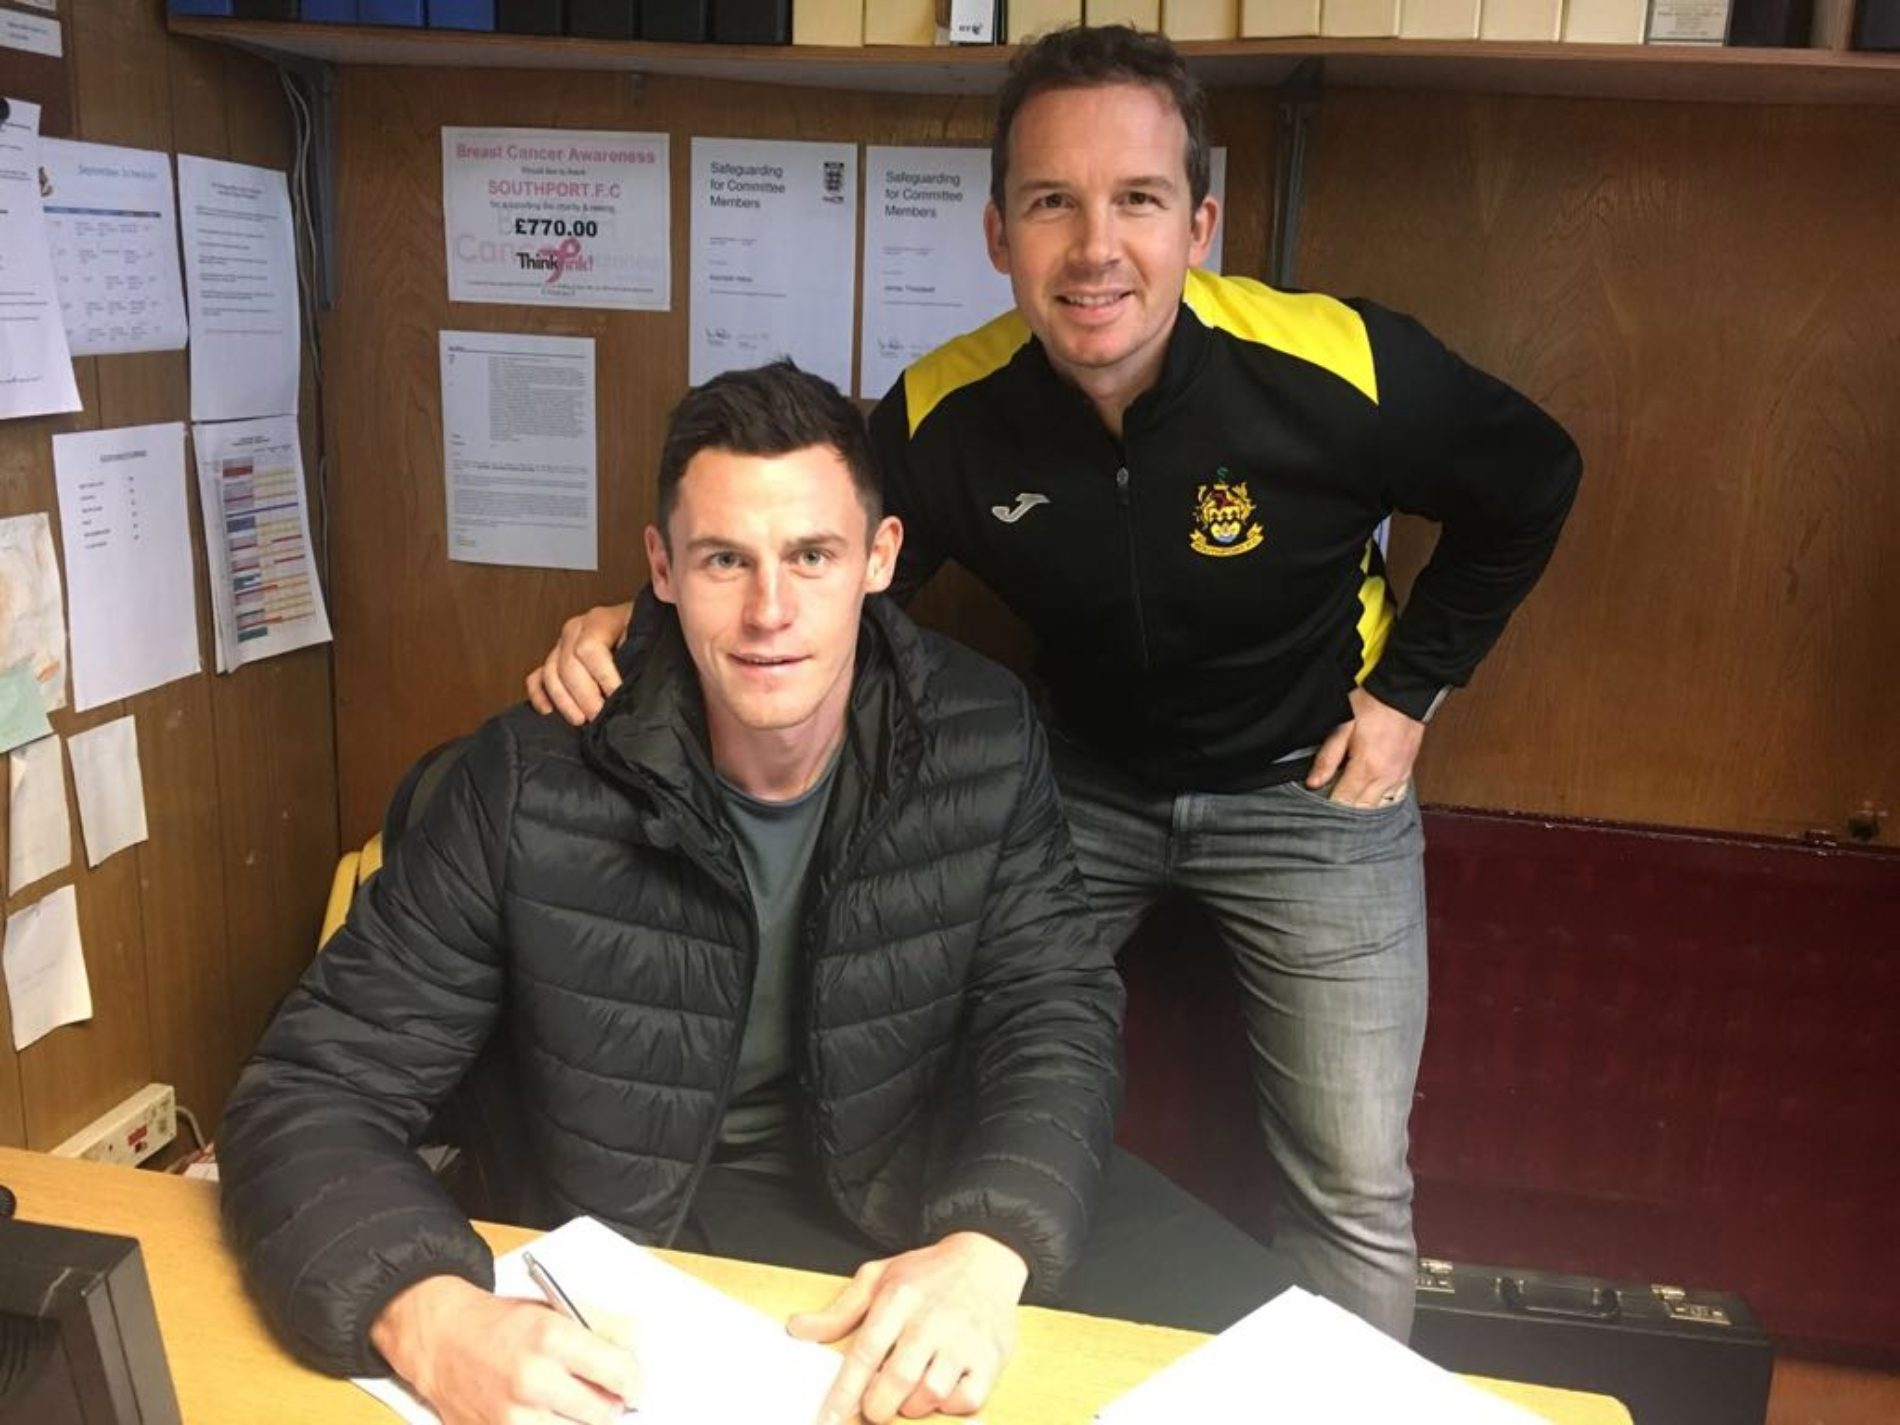 Southport have completed the transfer of 28-year-old defender Billy Priestley from Alfreton Town for an undisclosed fee.          Billy joined Alfreton in the Summer after time spent at Salford City, where he made 41 league appearances last term, and notably scored to equalise for Salford in their...